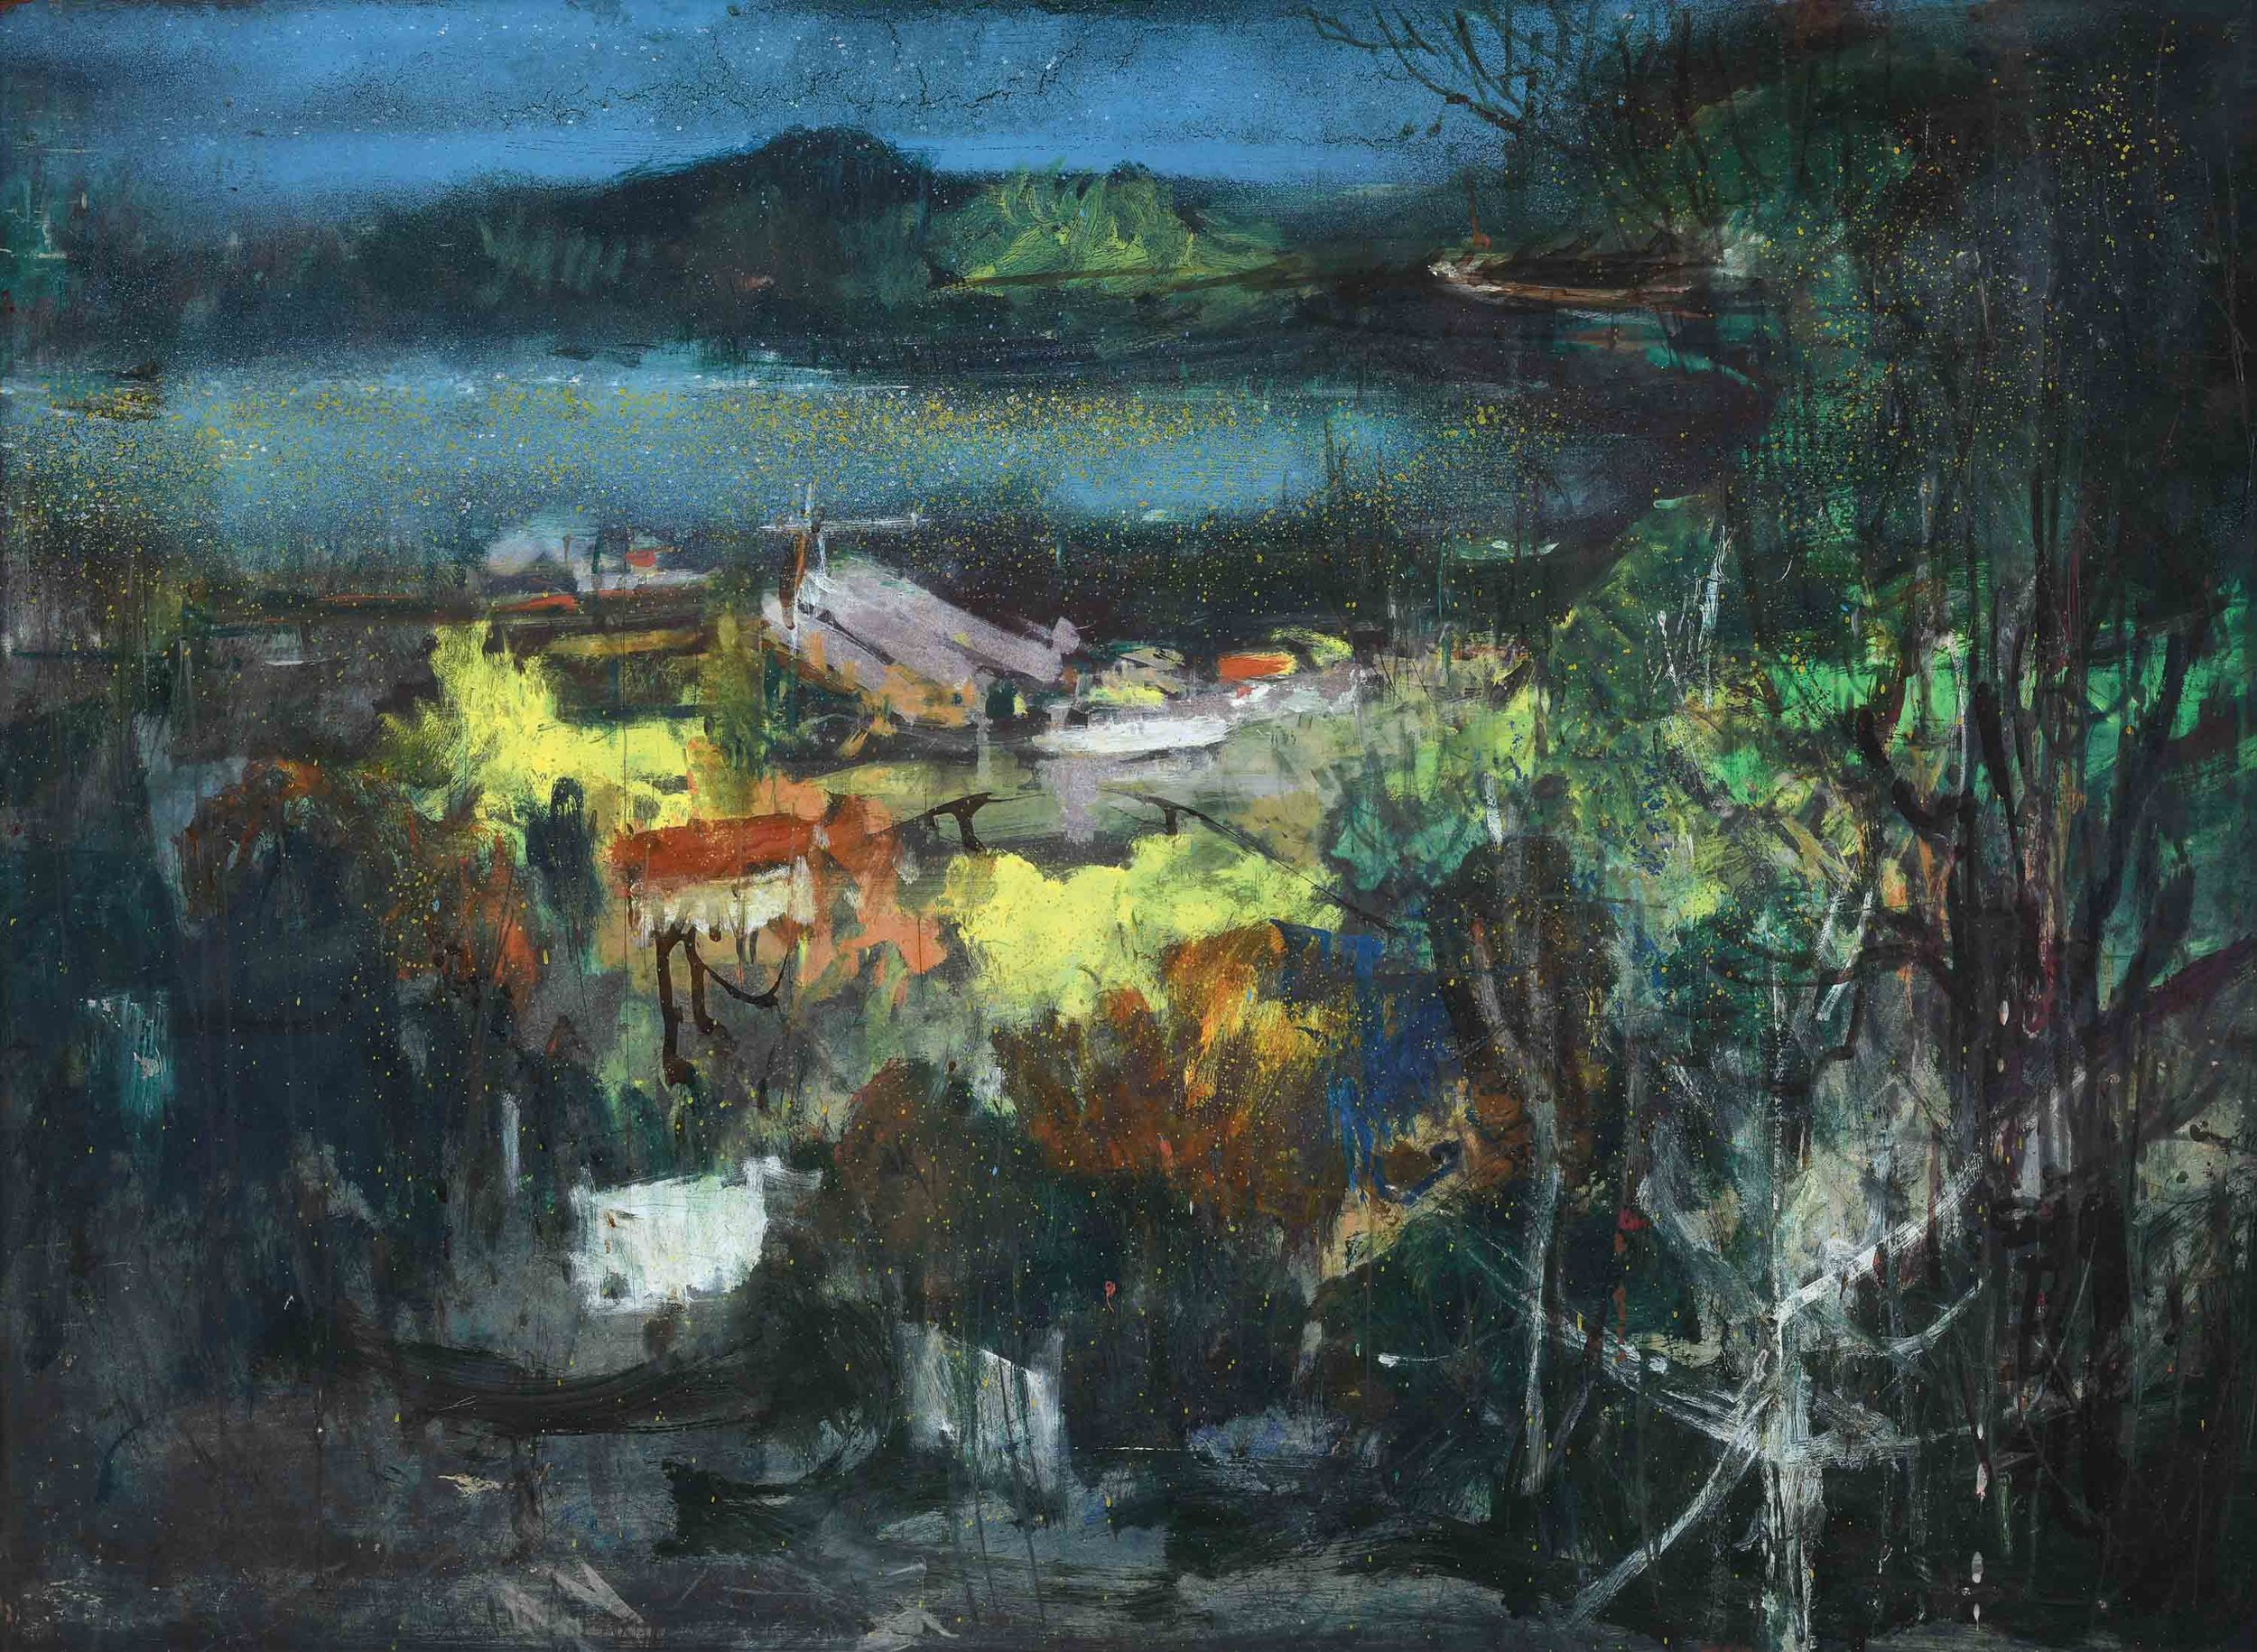 Vincent Hoisington, 'St. George/ Keppel Harbour', undated, mixed media on board, 78 x 106cm. Collection of the artist's family. Image courtesy of Art Agenda, S.E.A.